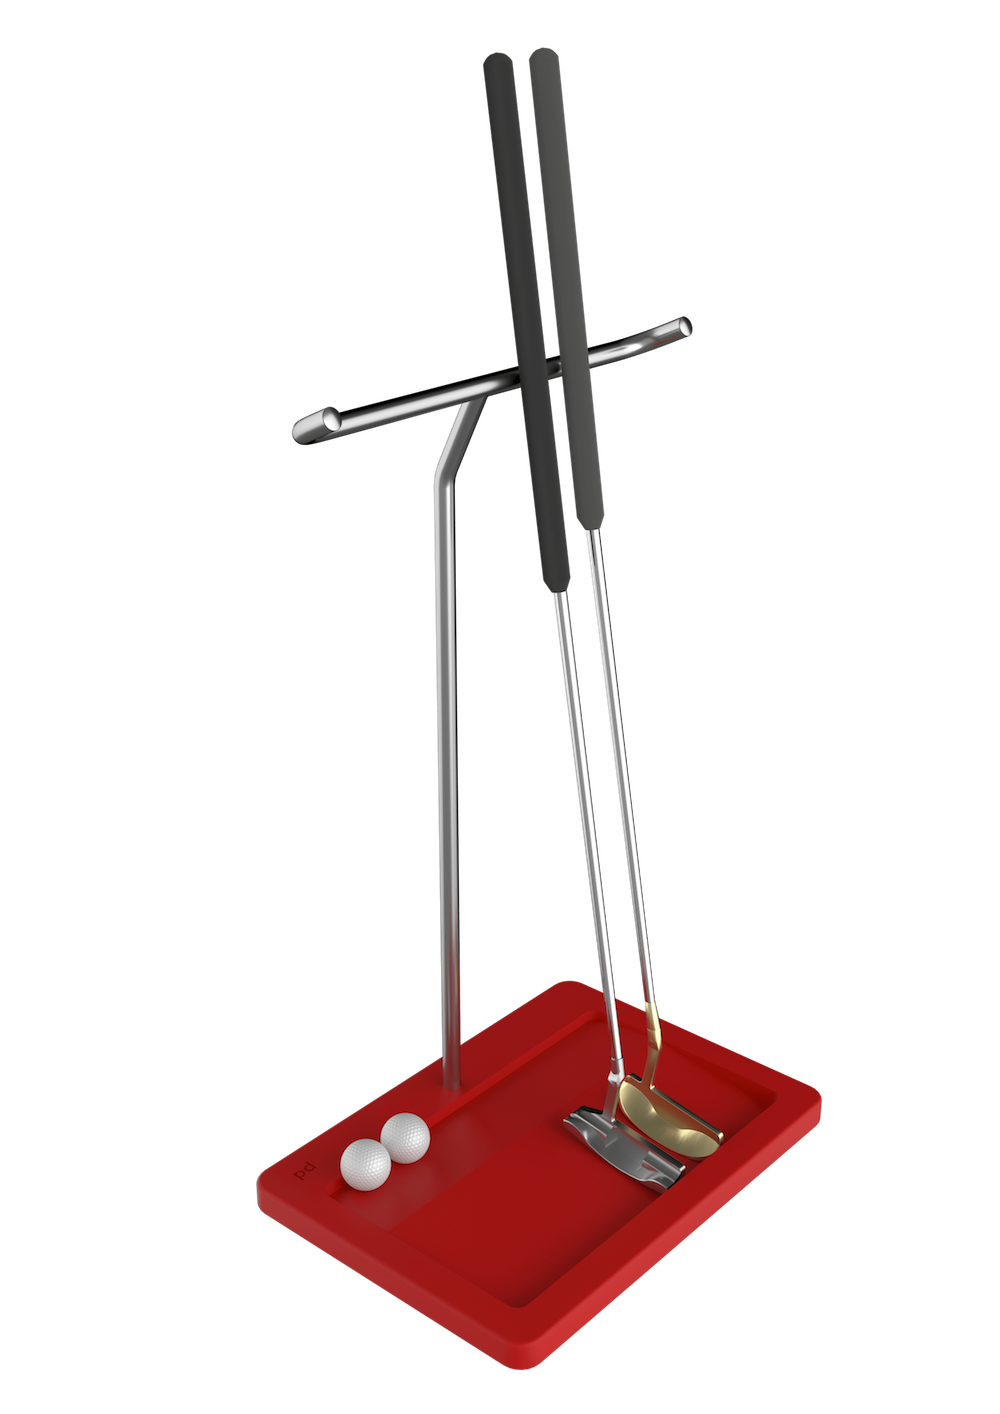 dublis Putter Rack